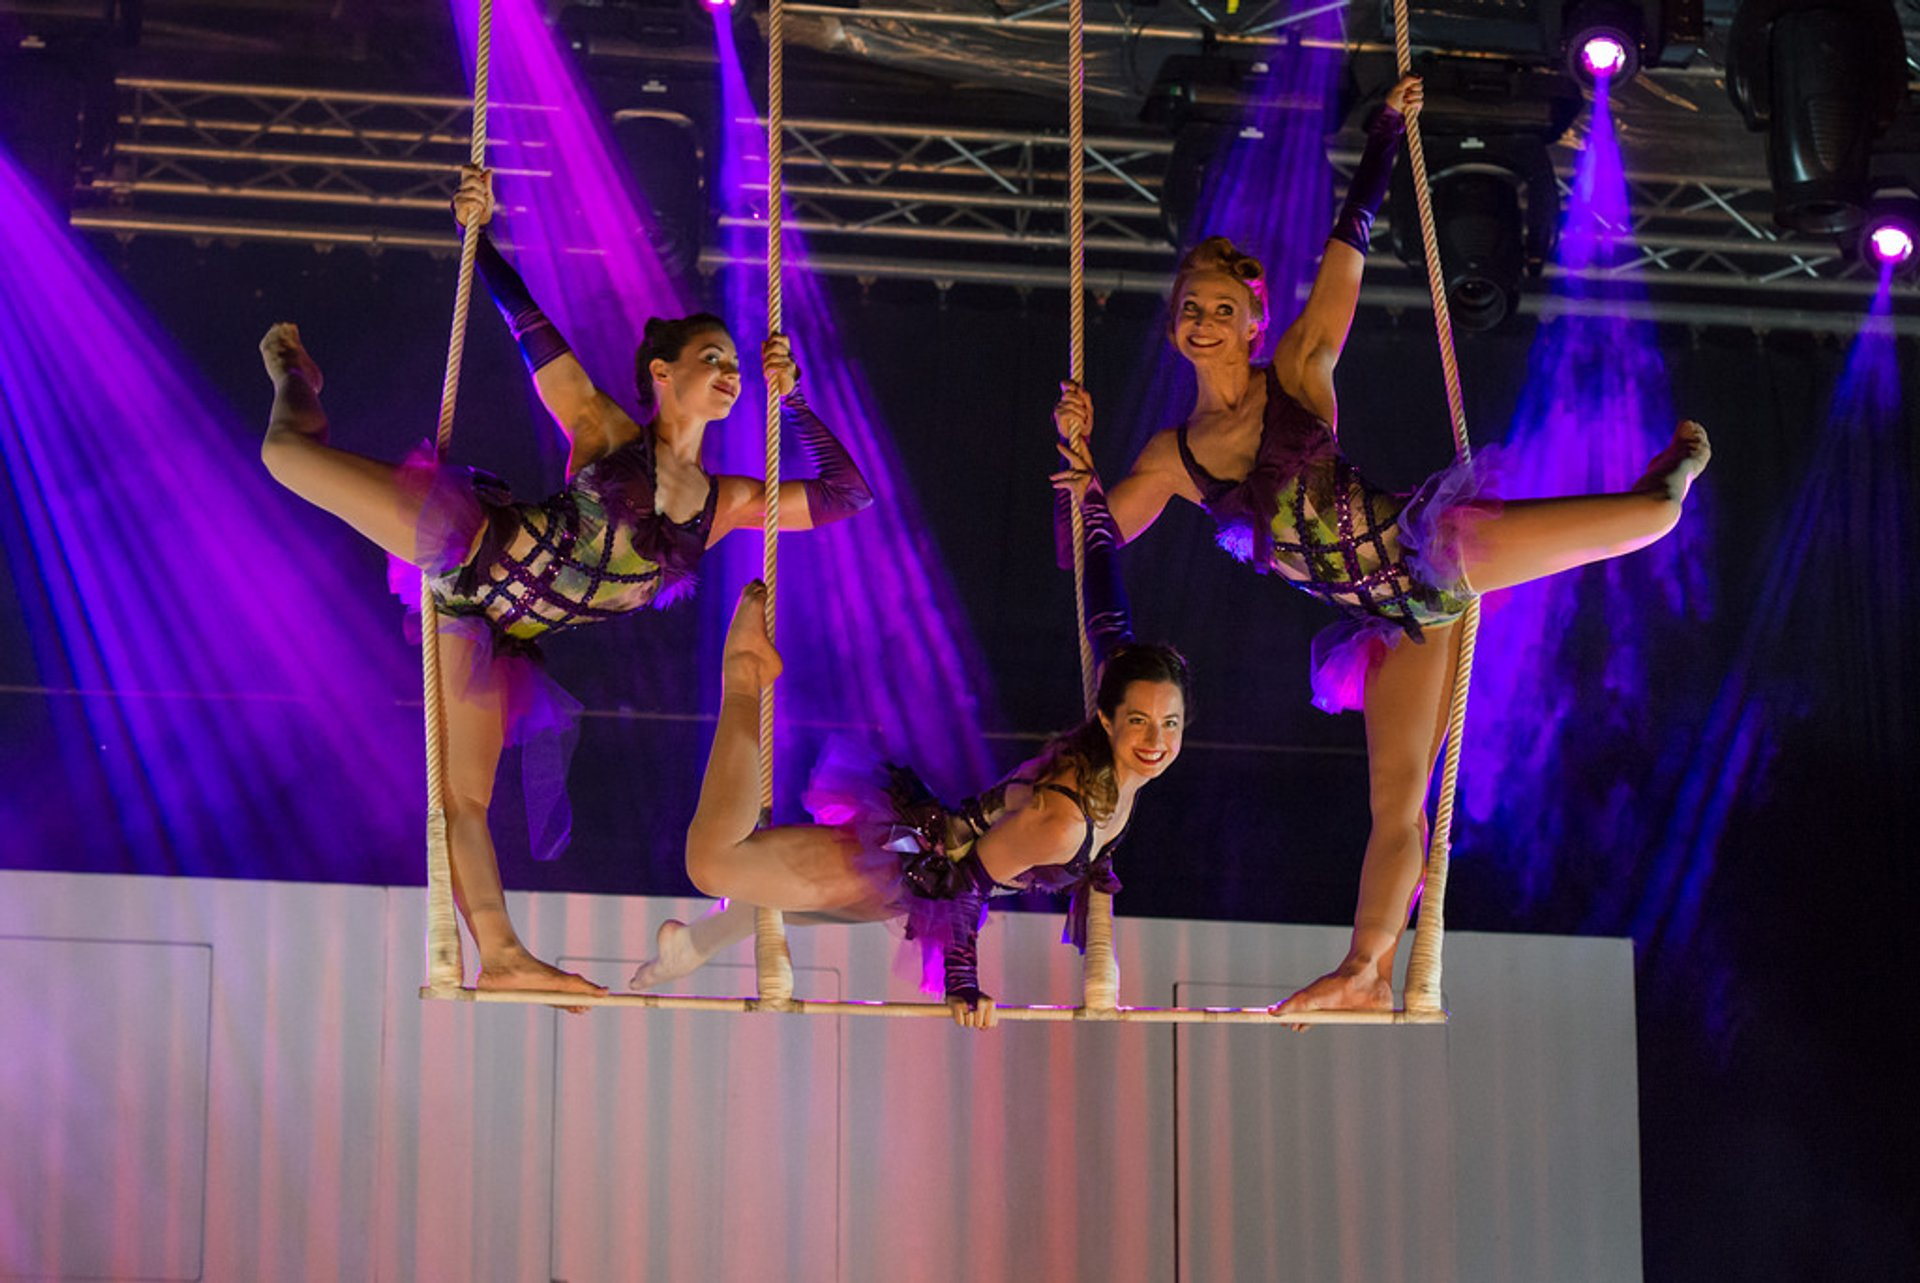 Best time for Montreal Cirque Festival in Montreal 2020